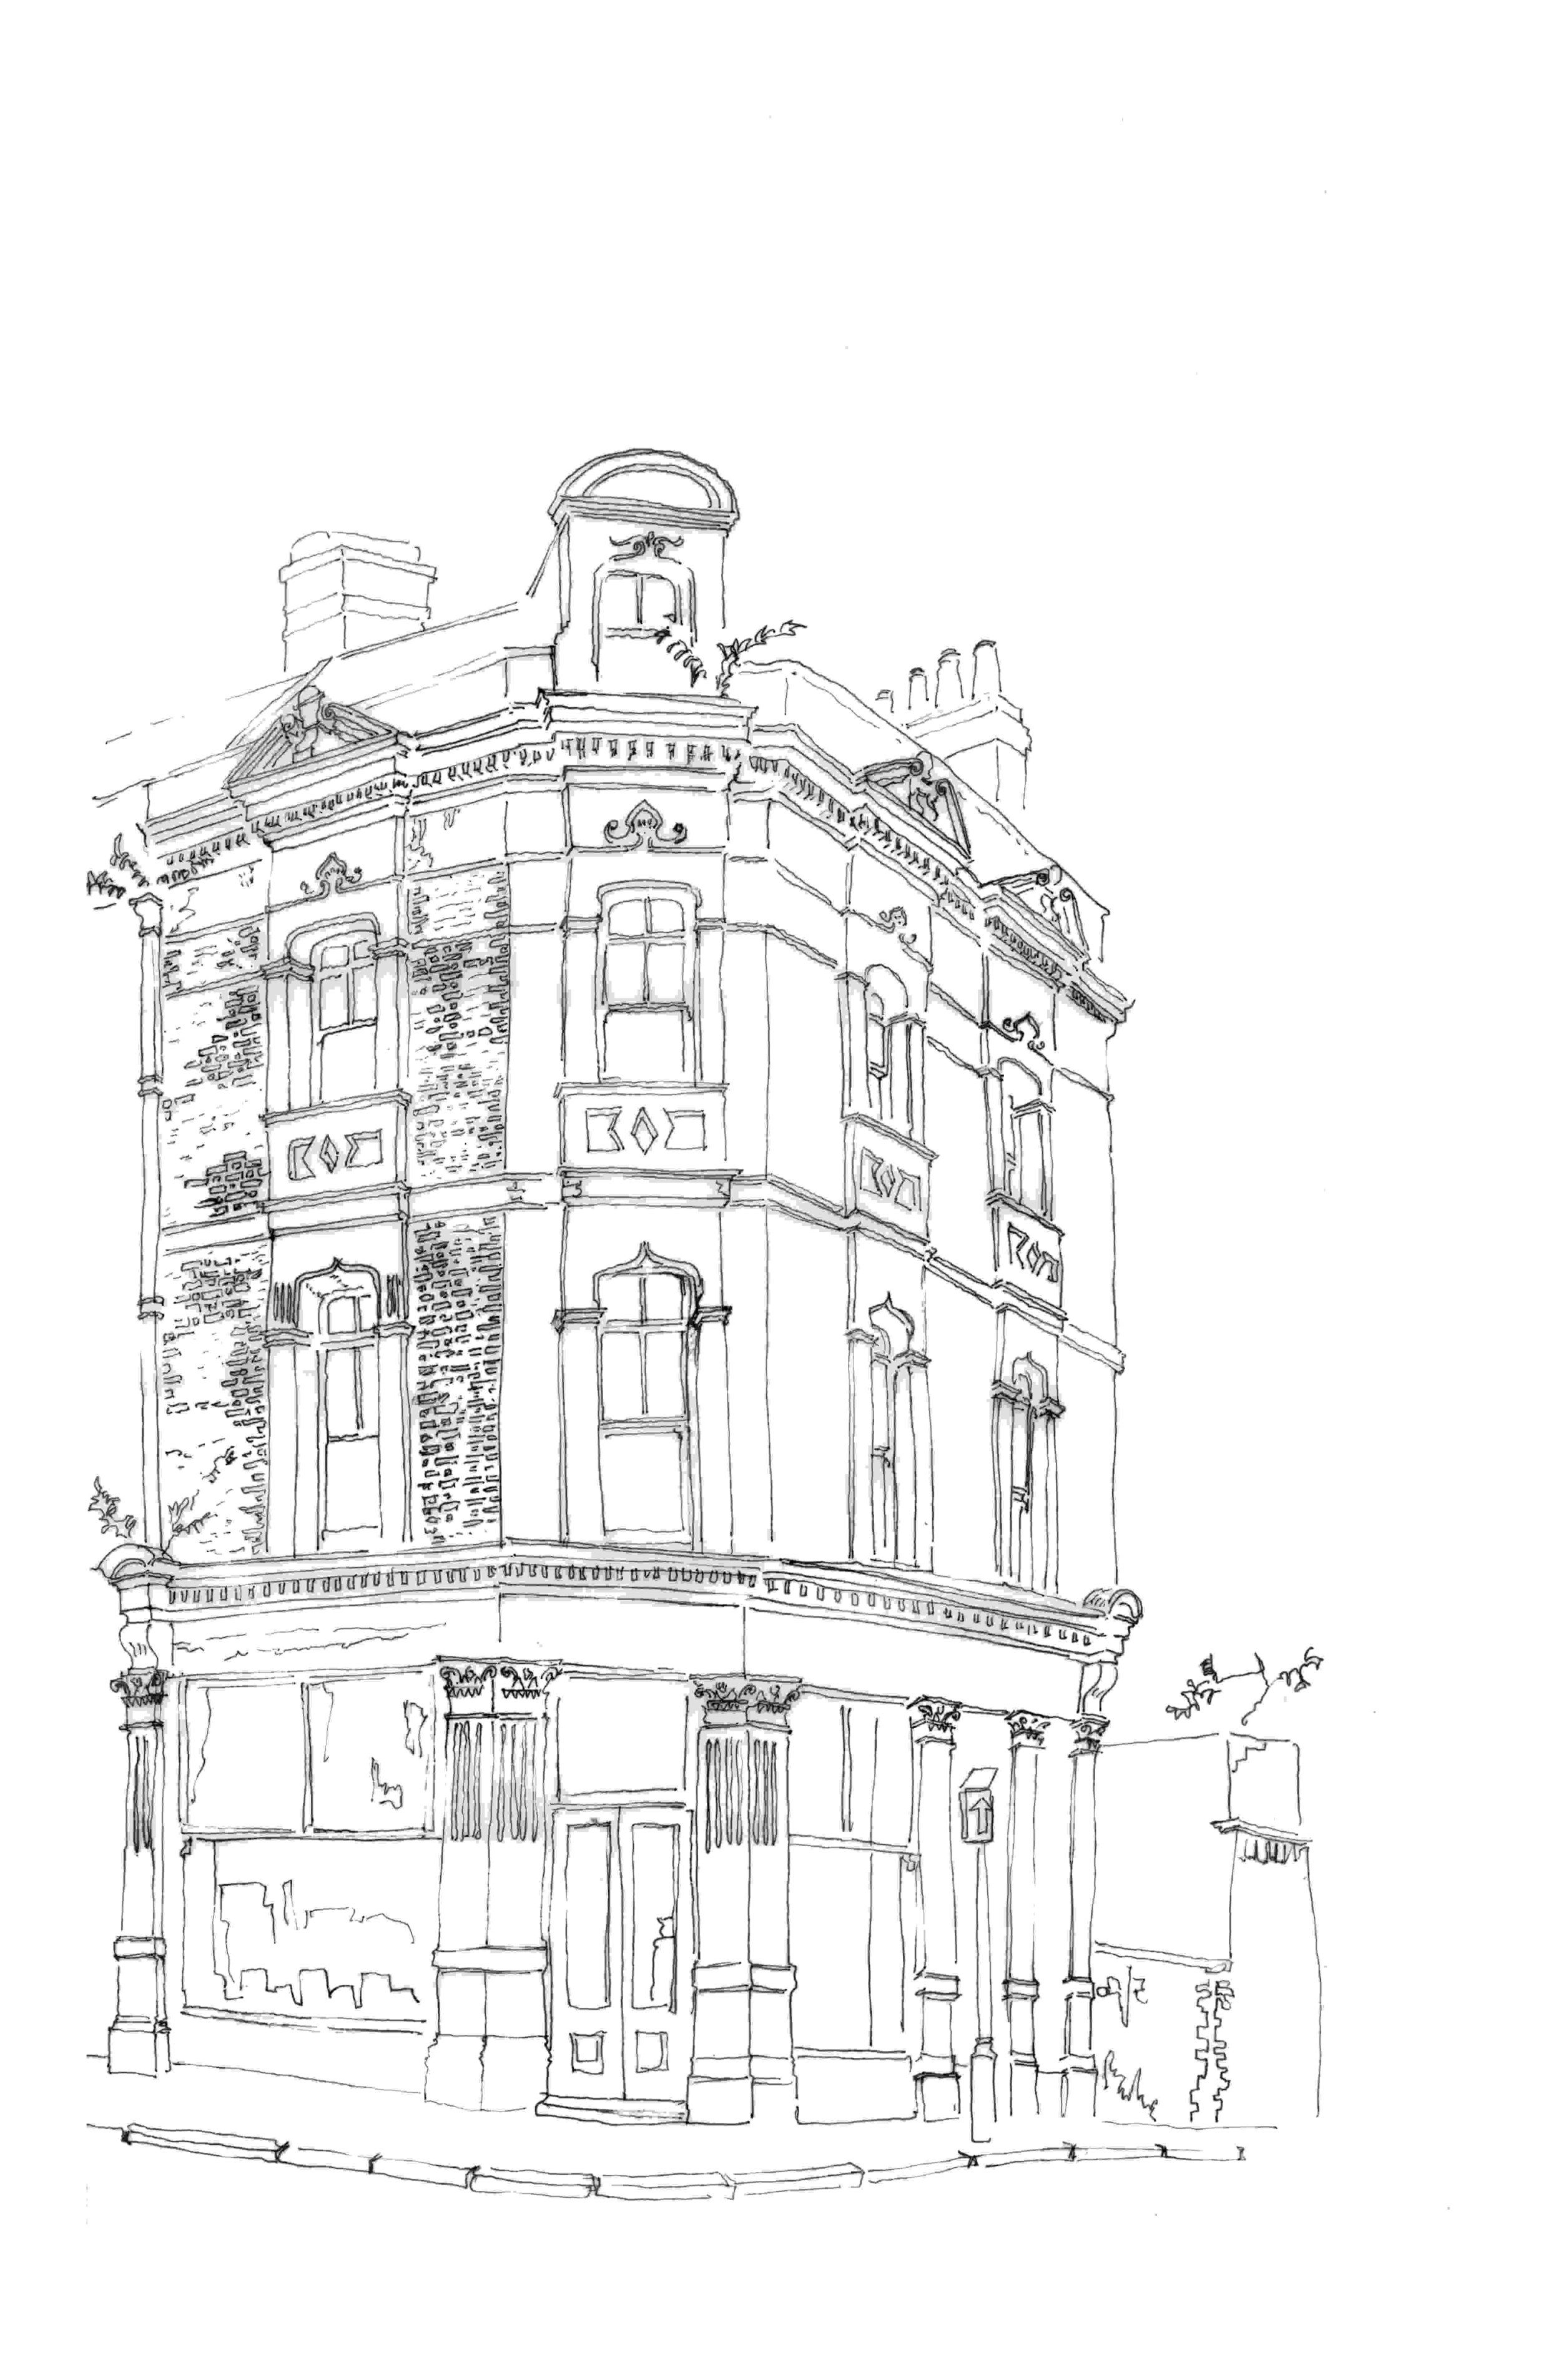 33 Camberwell Church Street low res.jpg